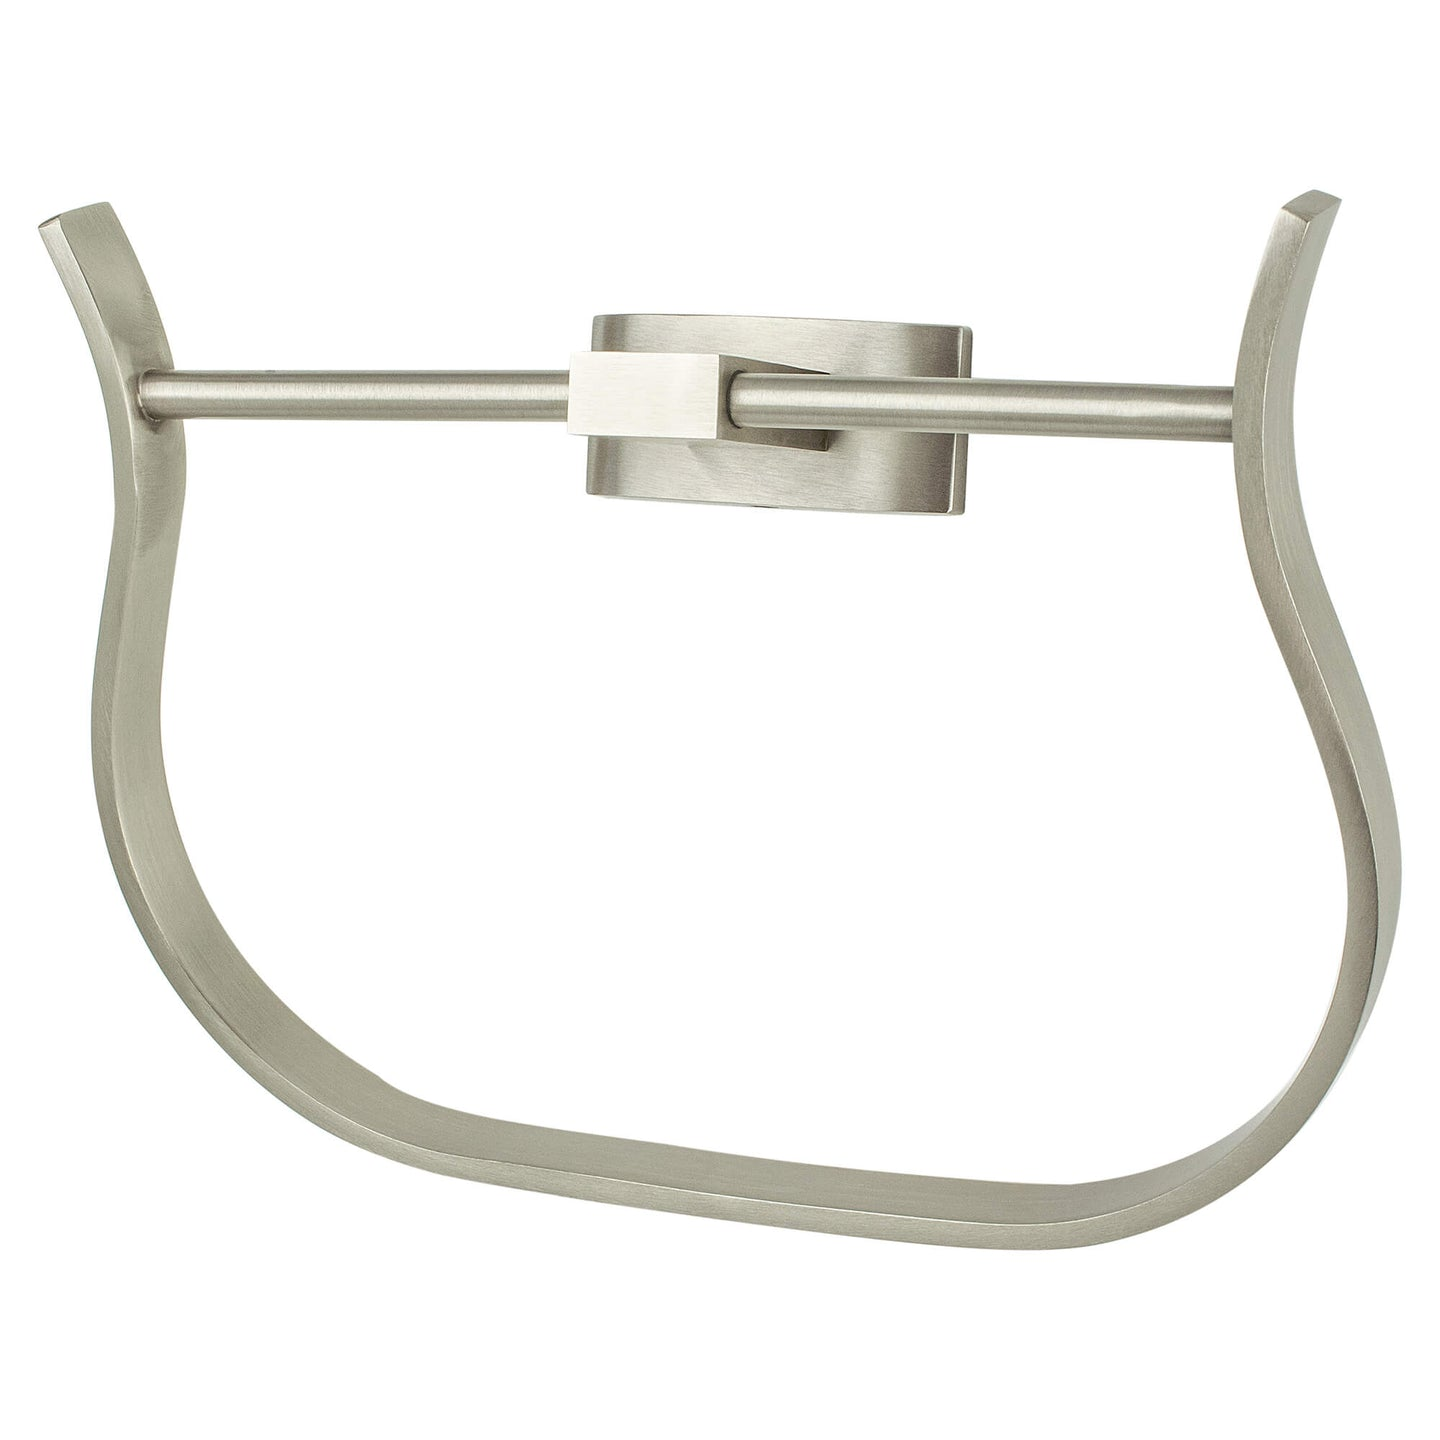 Curve Appeal Towel Ring Brushed Nickel